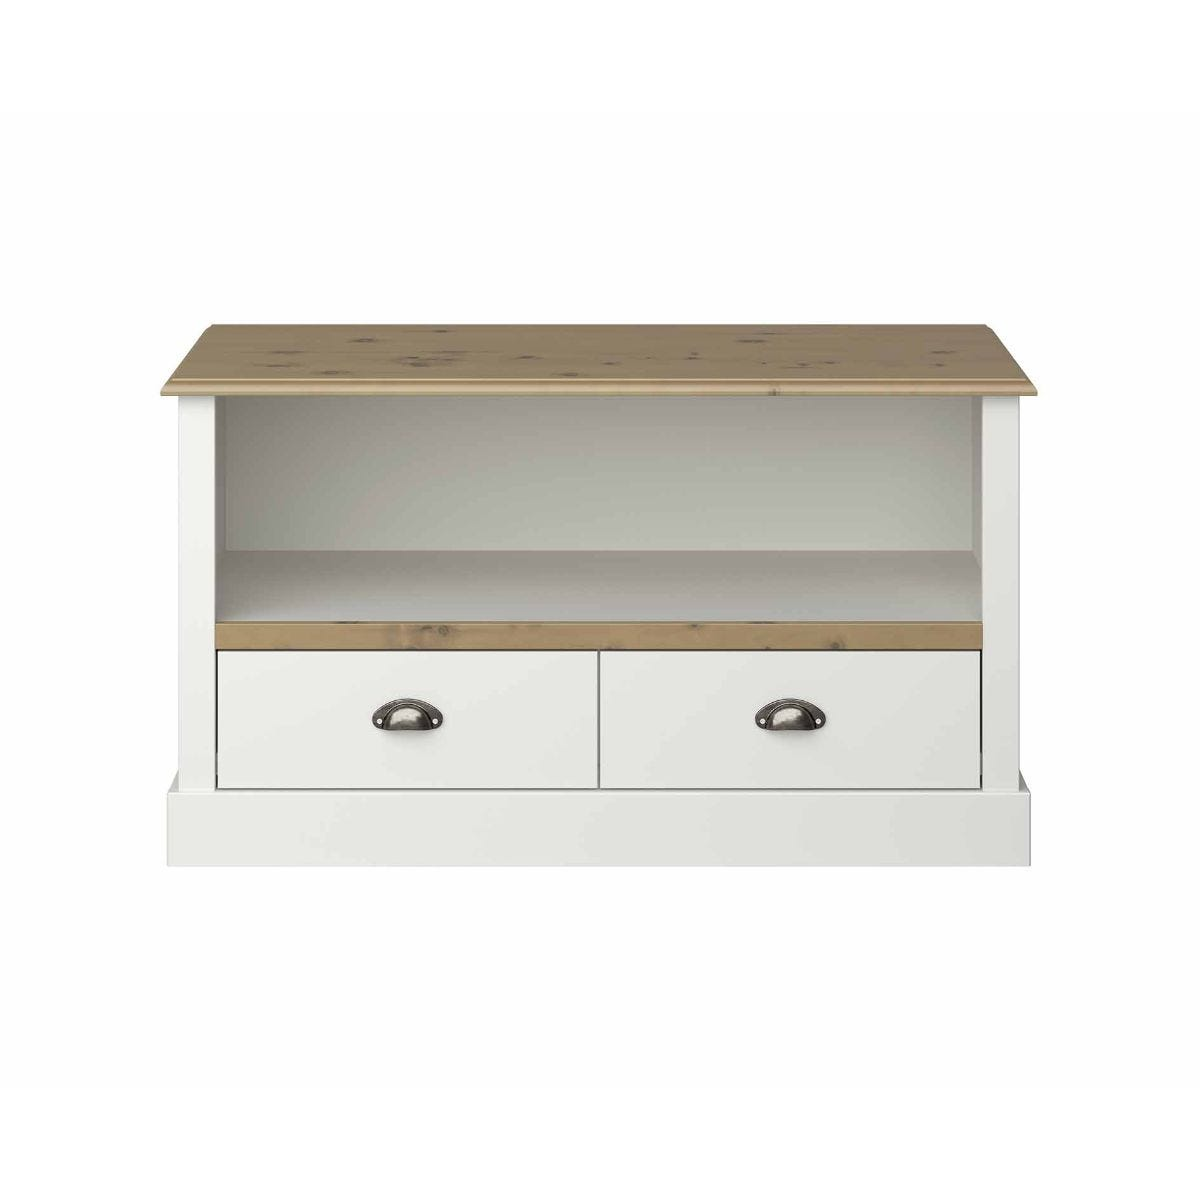 Steens Sandringham TV Stand Unit, White